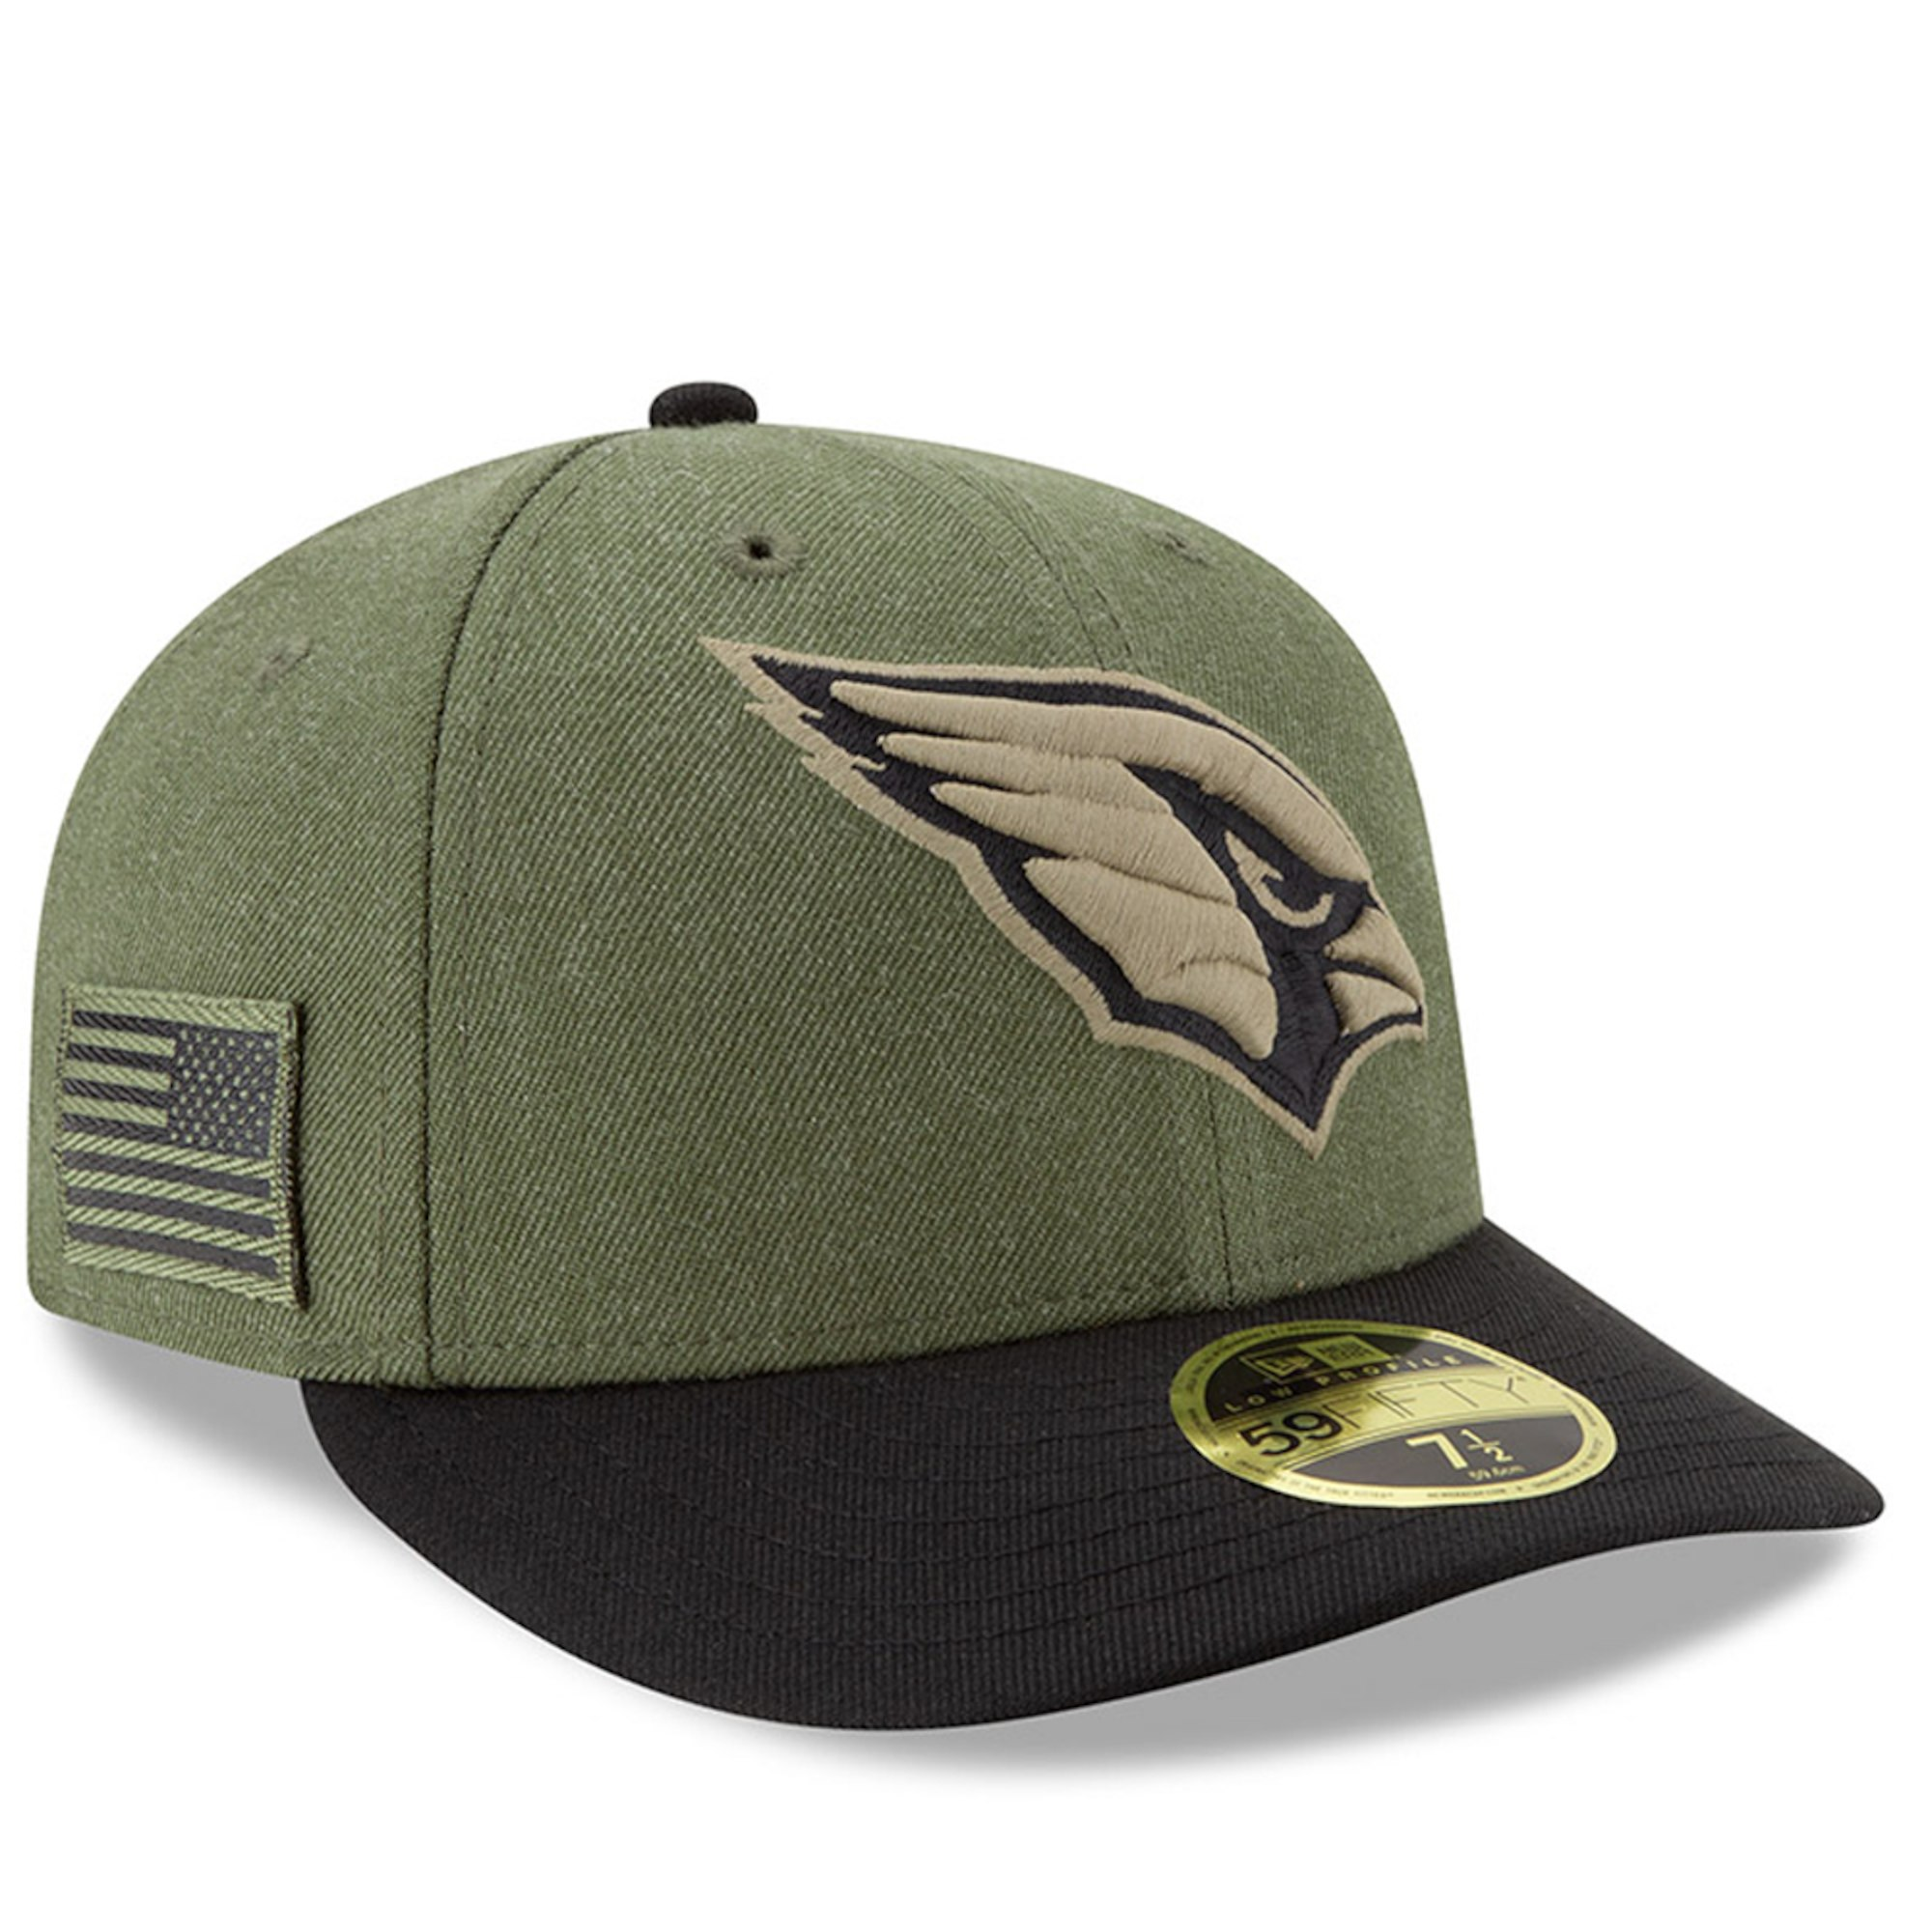 ca6eaff3d Details about NEW ERA Arizona Cardinals Salute to Service 59FIFTY Fitted  Low Profile Hat Cap